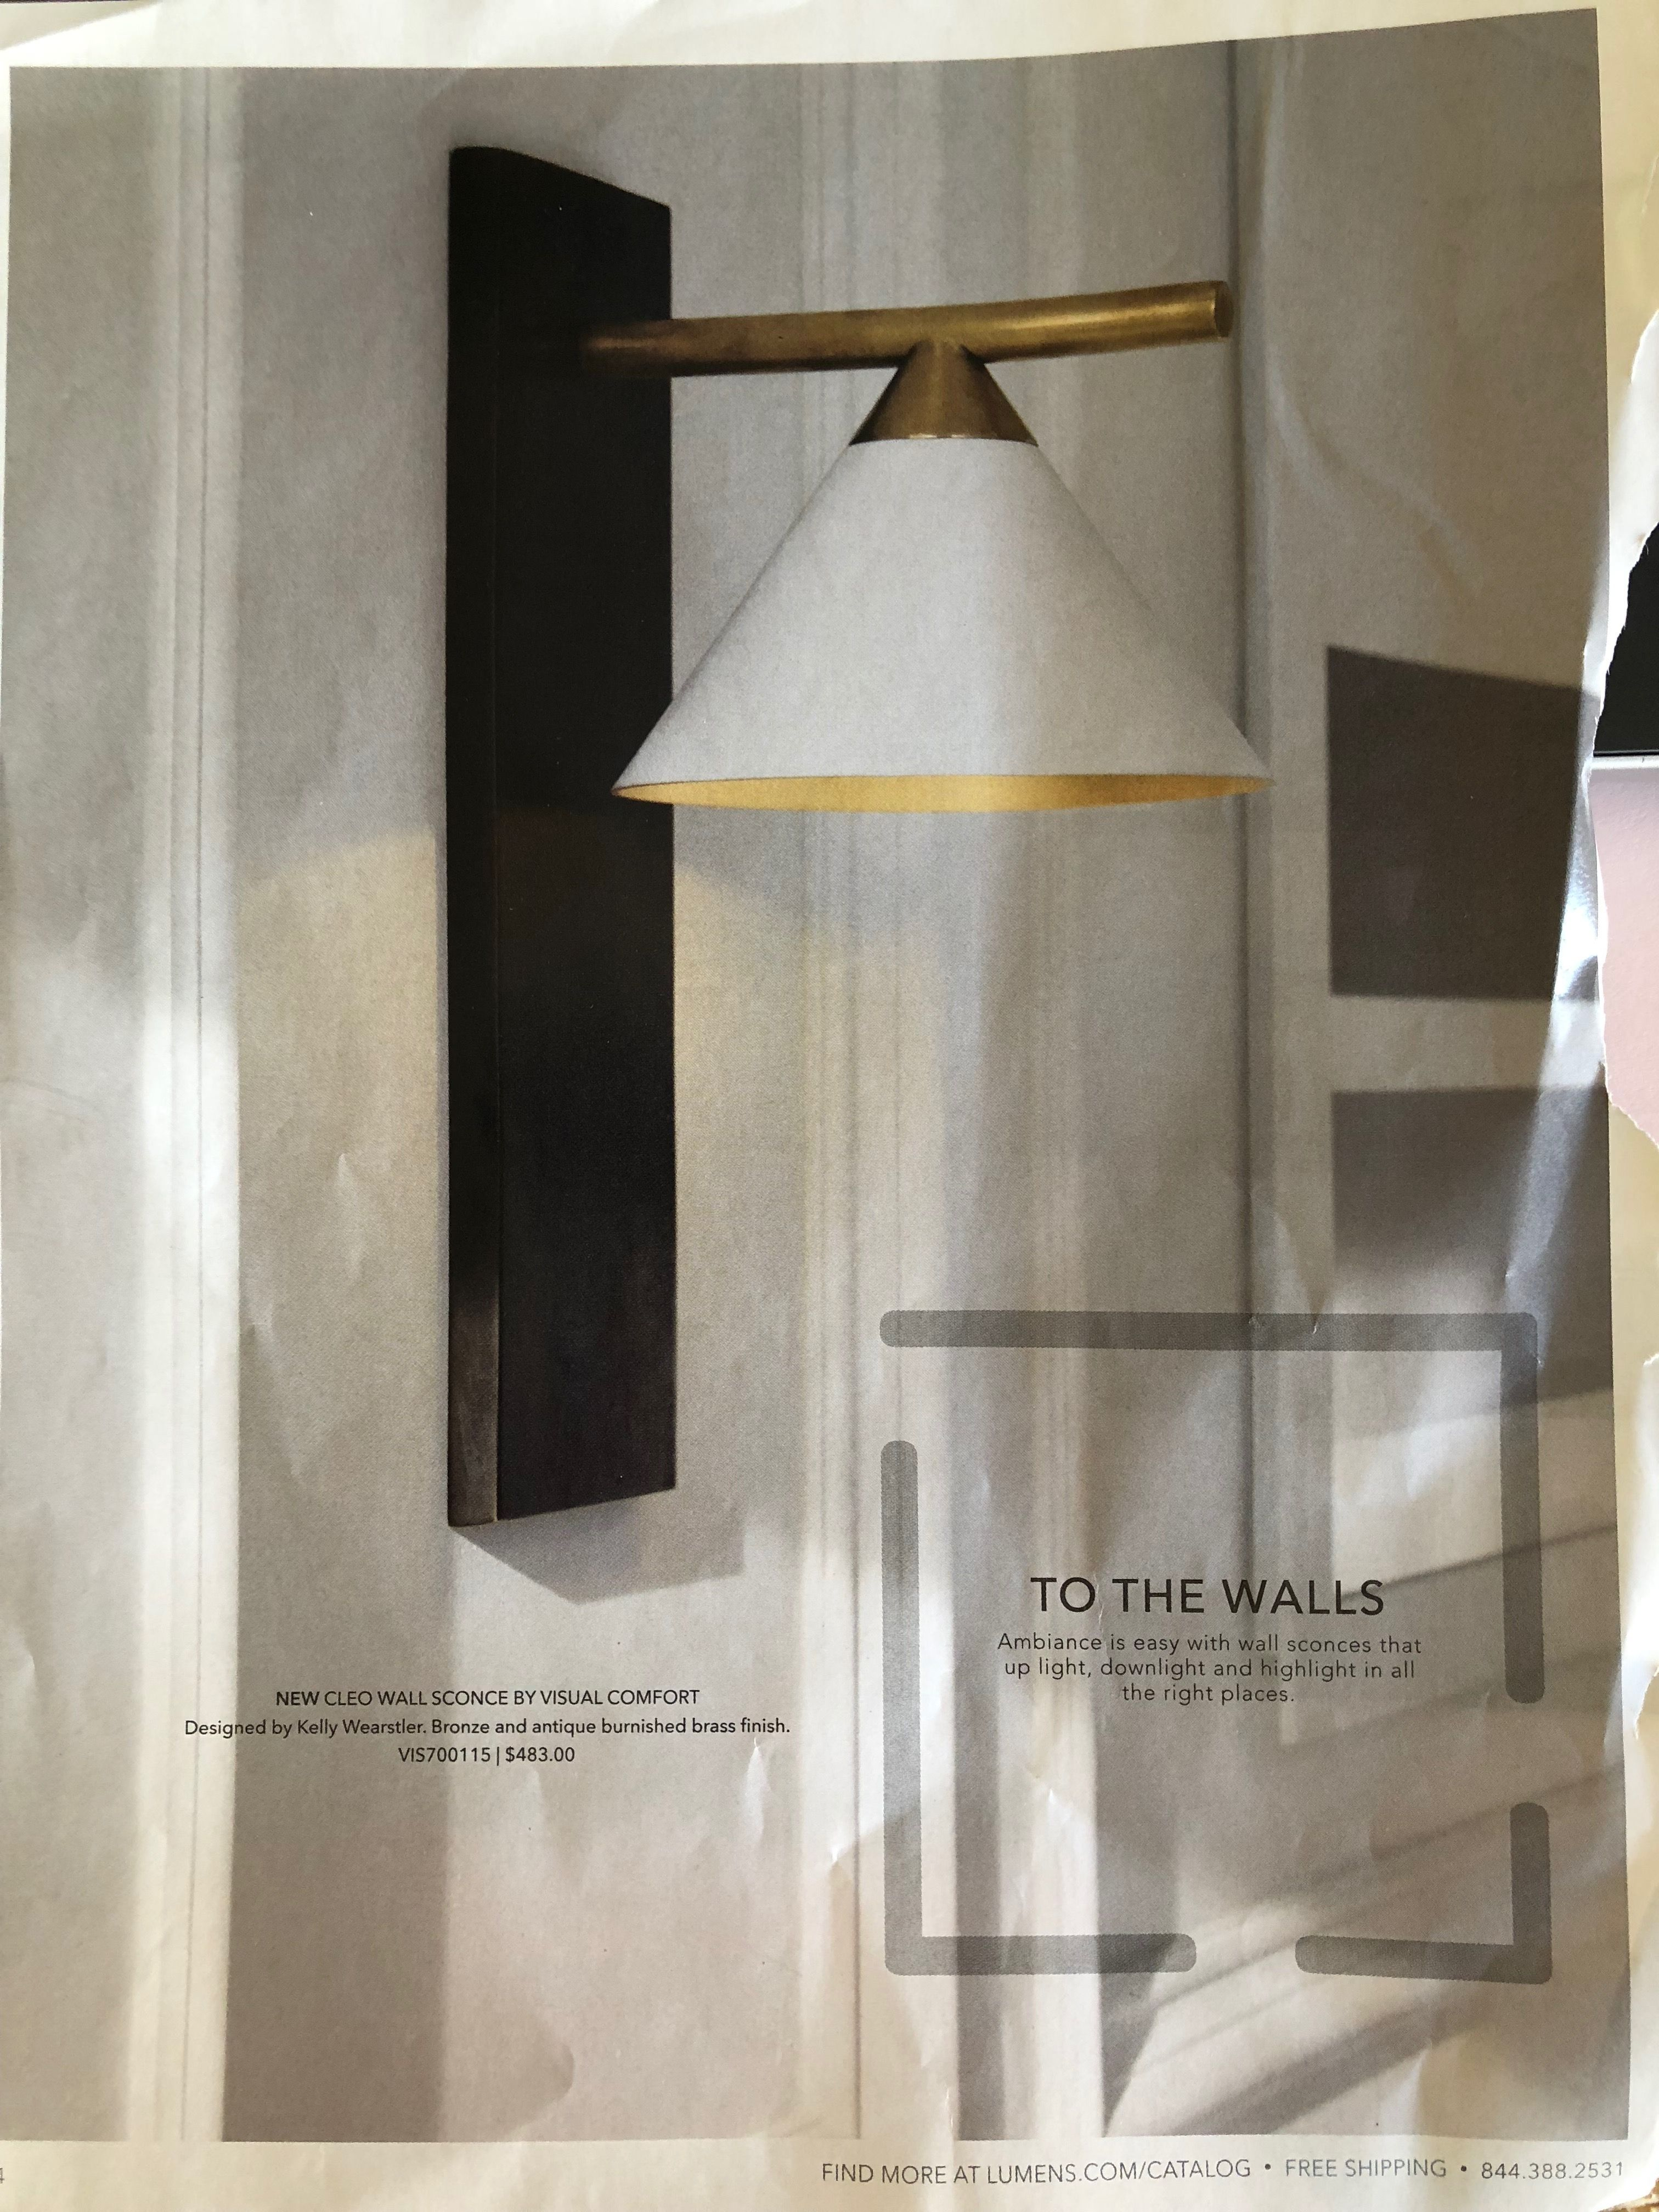 Cleo Wall Sconce By Visual Comfort Wall Lights Sconces Wall Sconces